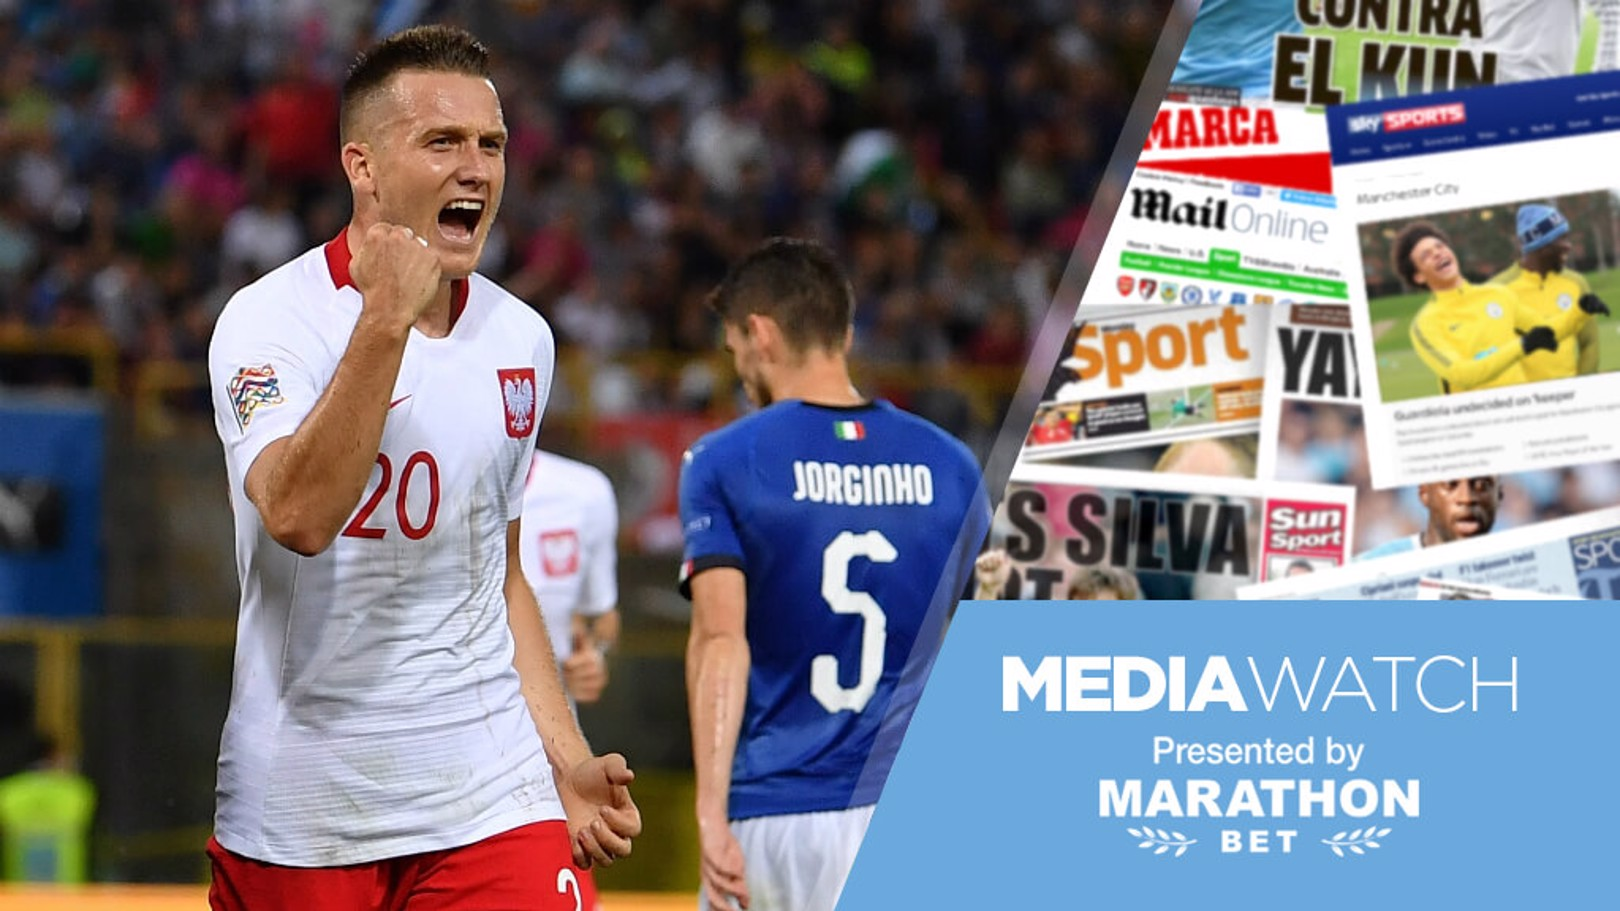 TRANSFER TALES: It's claimed City are set to battle Liverpool for the services of Napoli midfielder Piotr Zielinski...